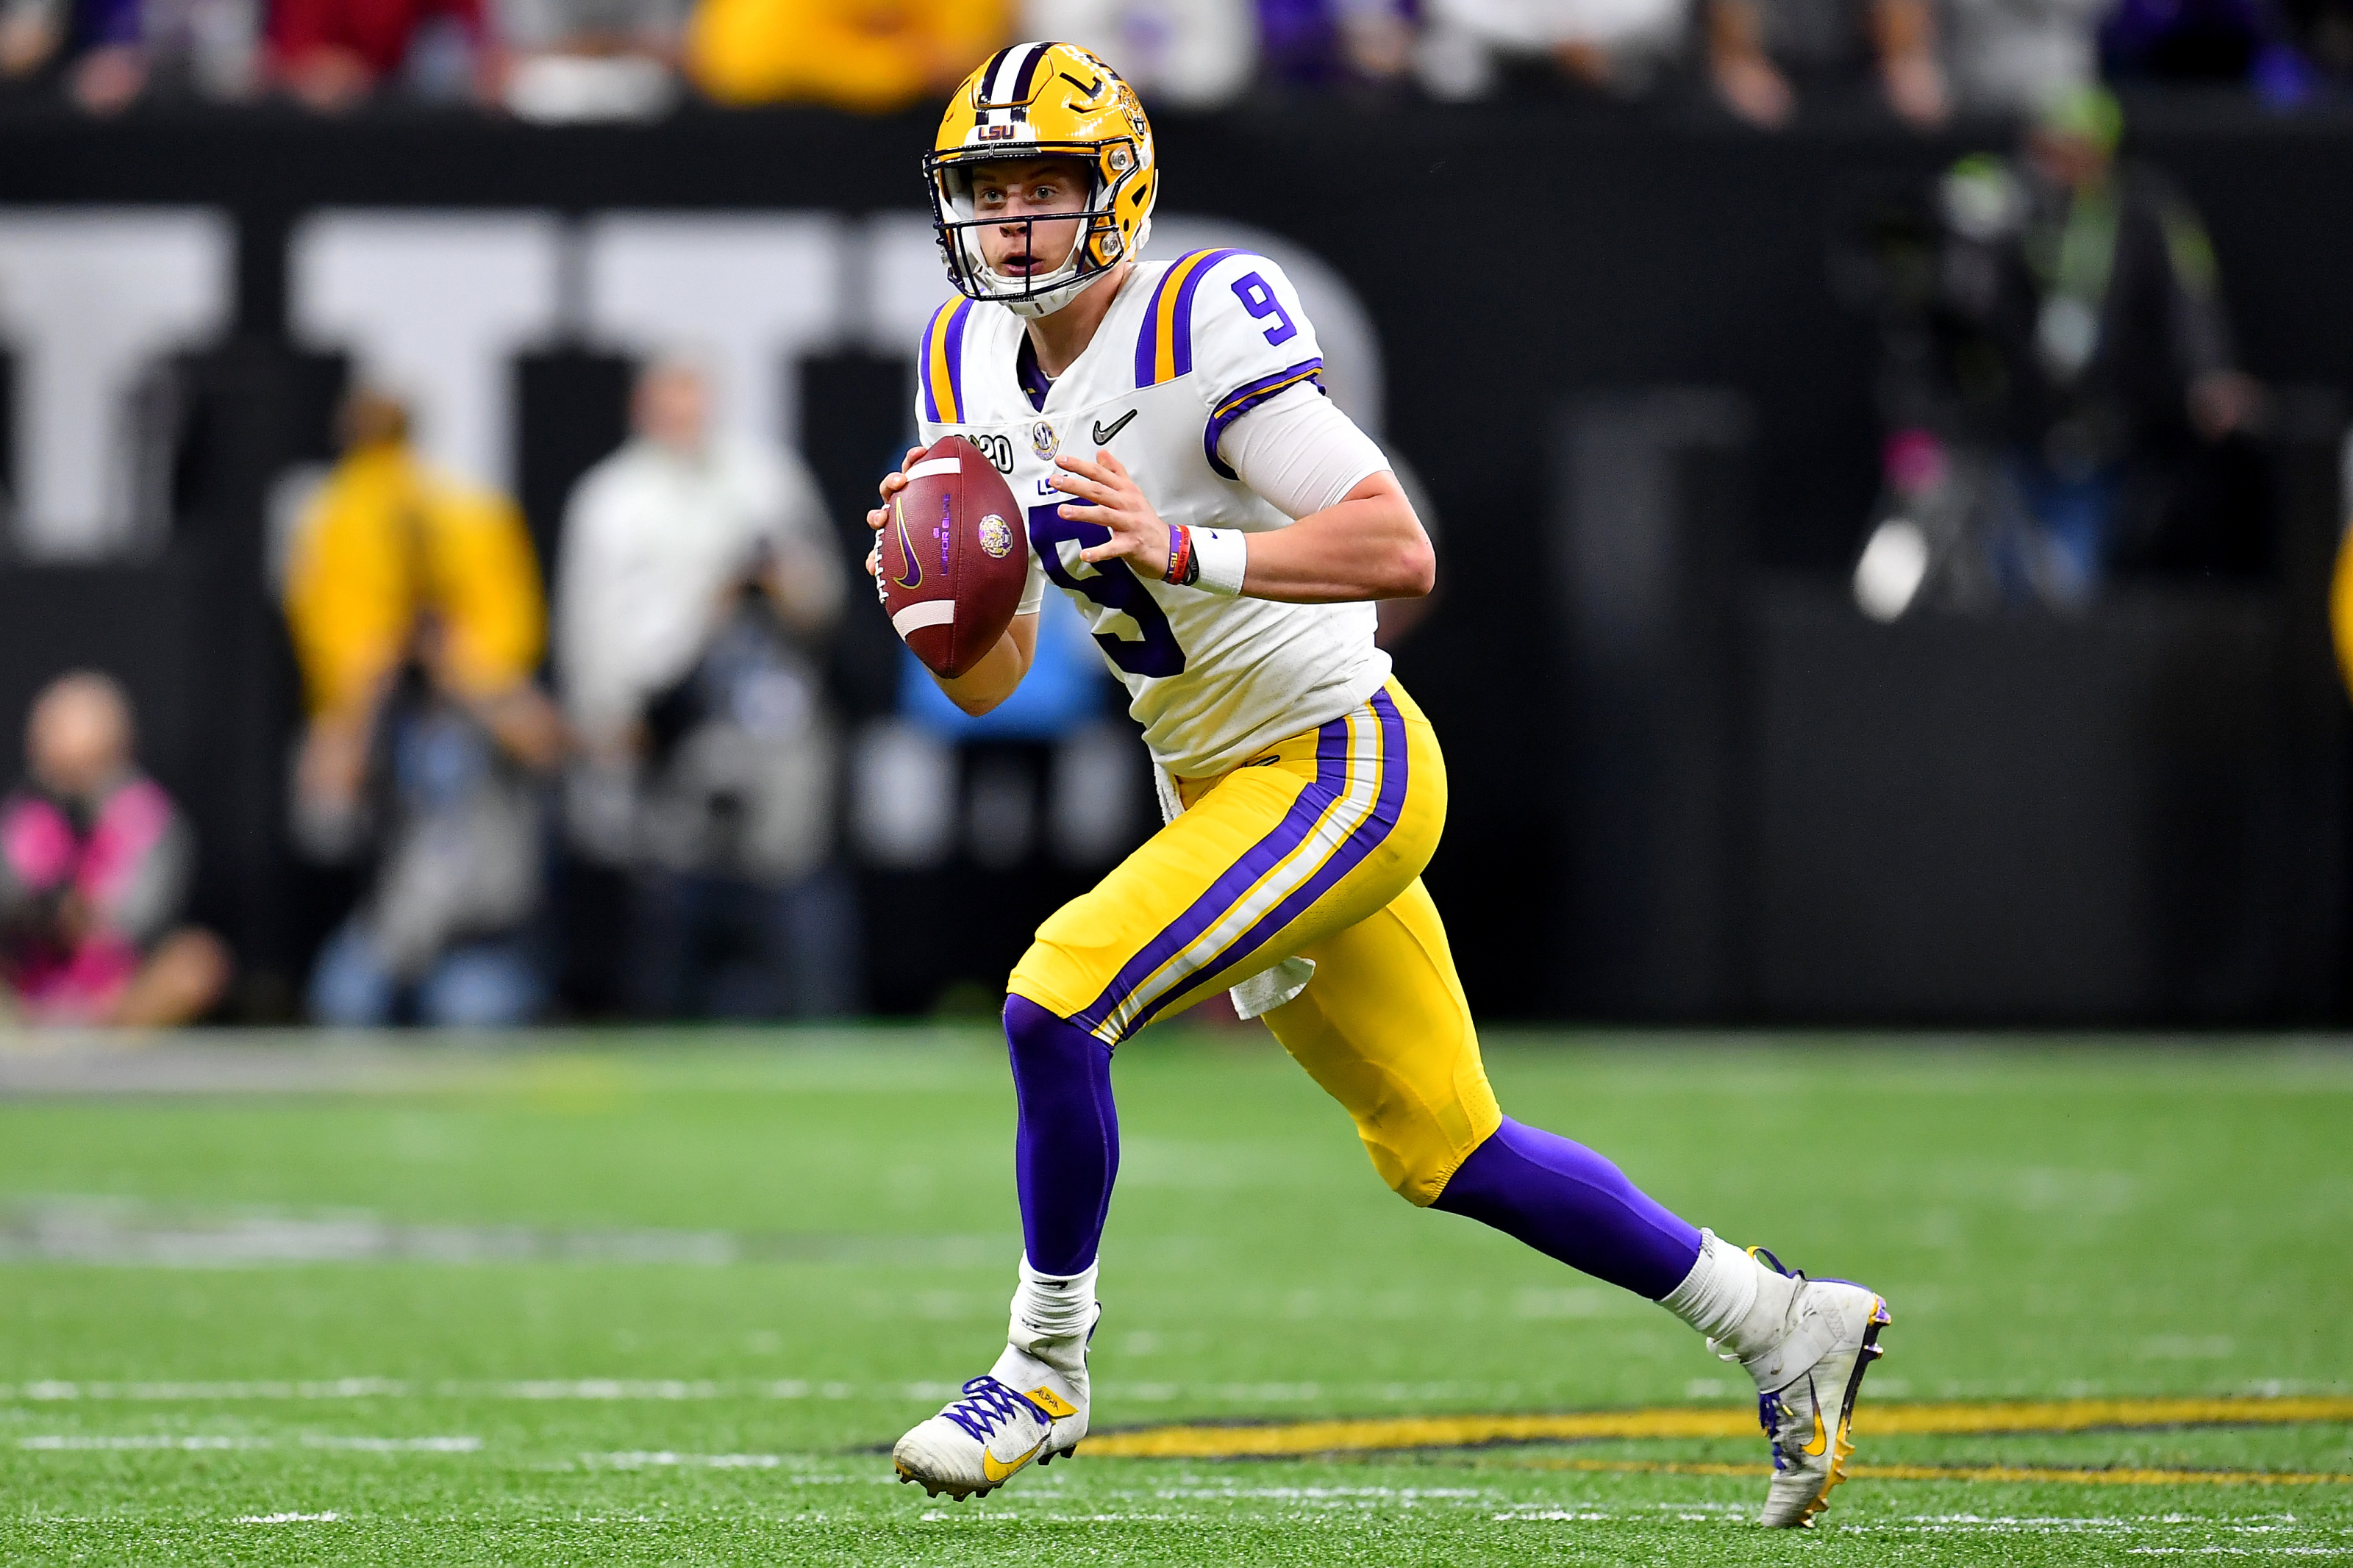 2020 NFL Draft: Joe Burrow cannot fix Bengals, needs to use his leverage